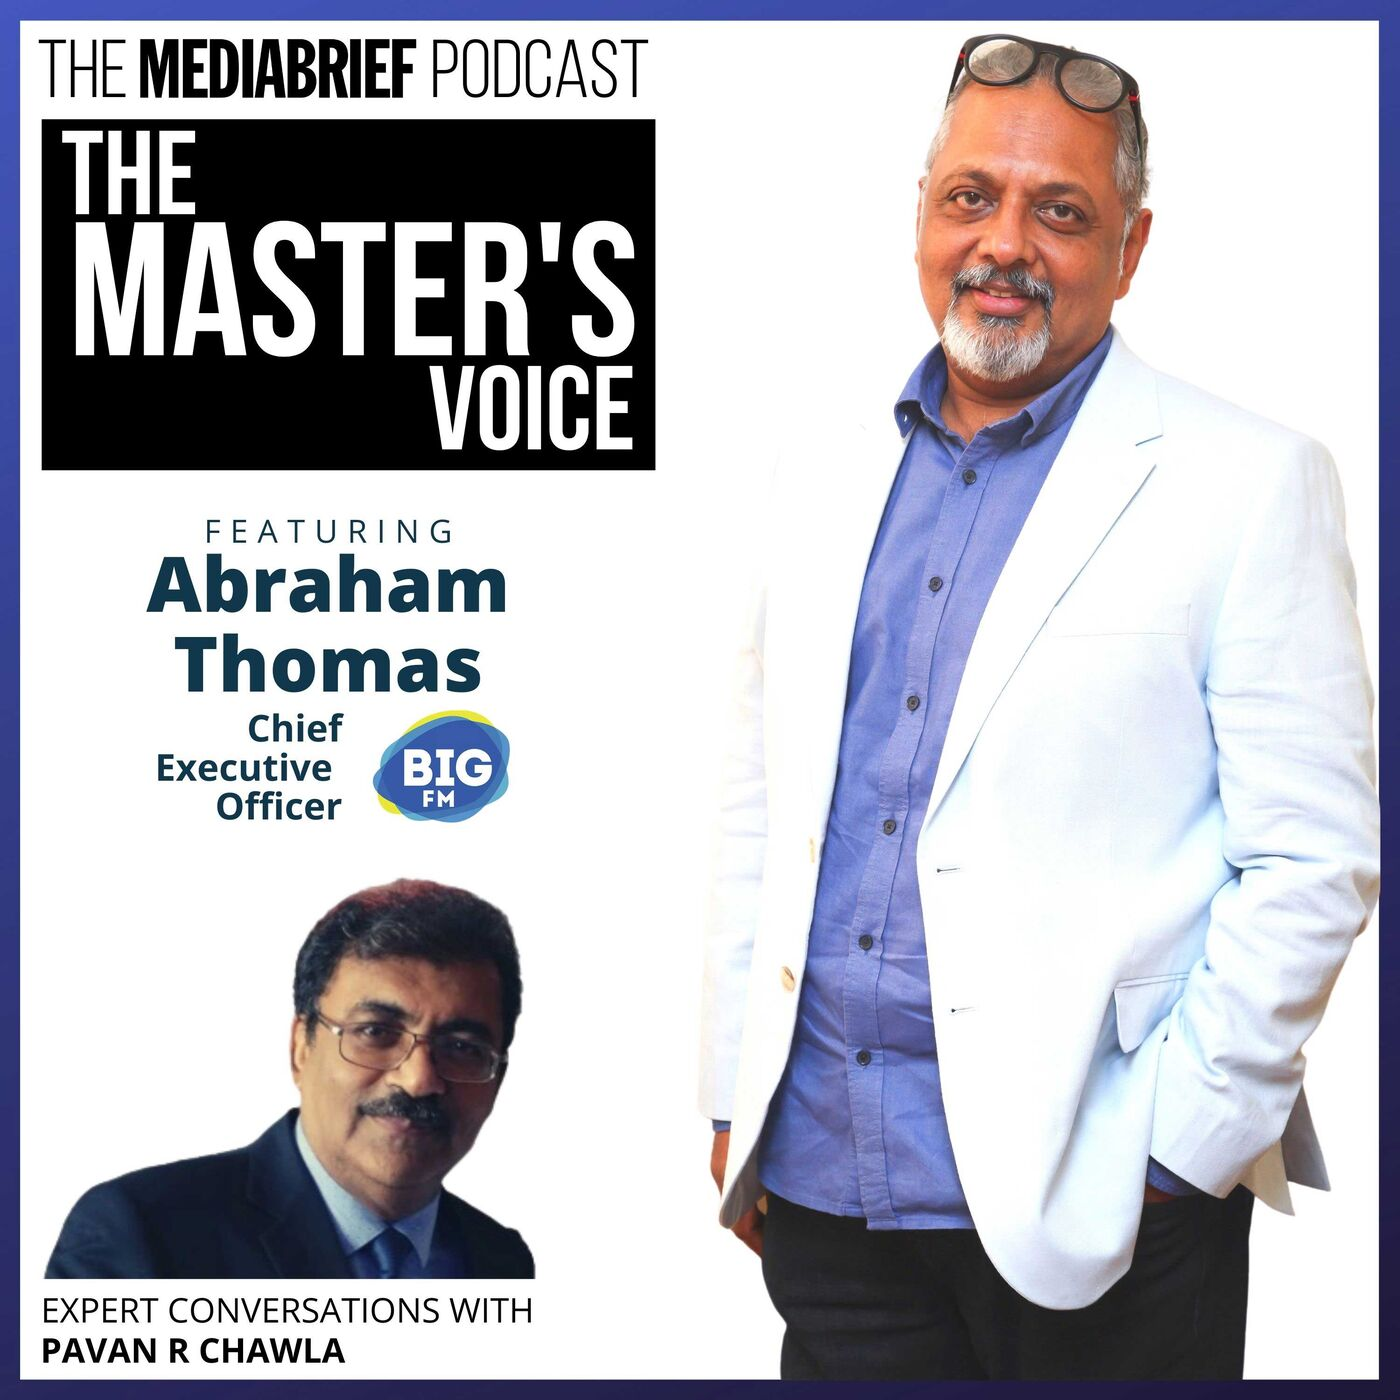 EXCLUSIVE PODCAST: Abraham Thomas - CEO 92.7 BIG FM in India - 'Radio's Finest Hour'